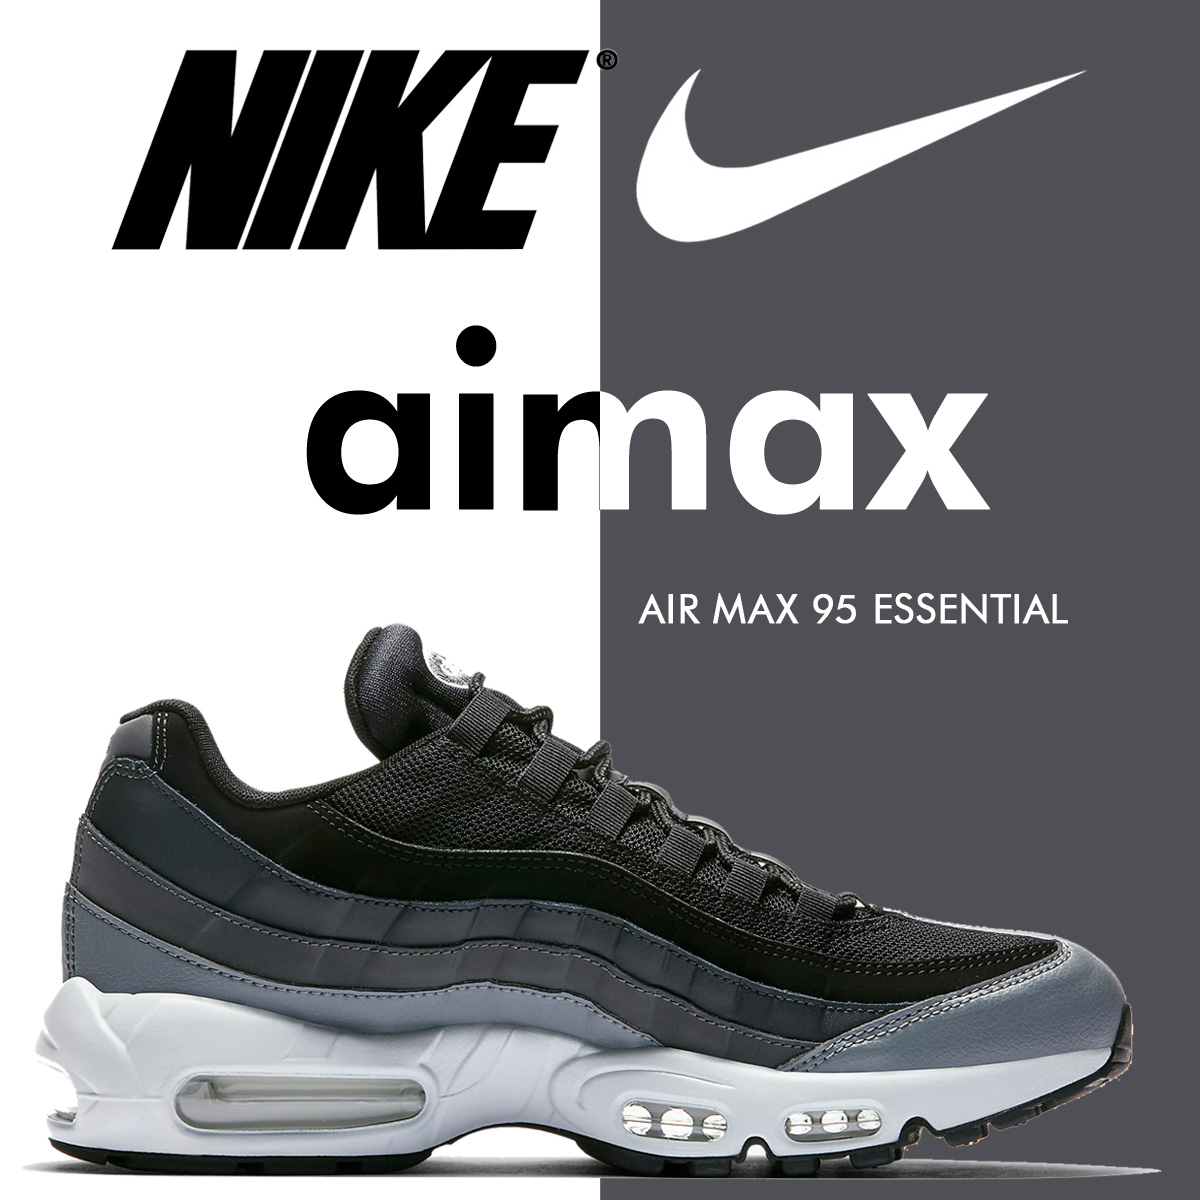 a557795bf9 ... NIKE Kie Ney AMAX 95 essential sneakers AIR MAX 95 ESSENTIAL 749,766-021  men's shoes ...